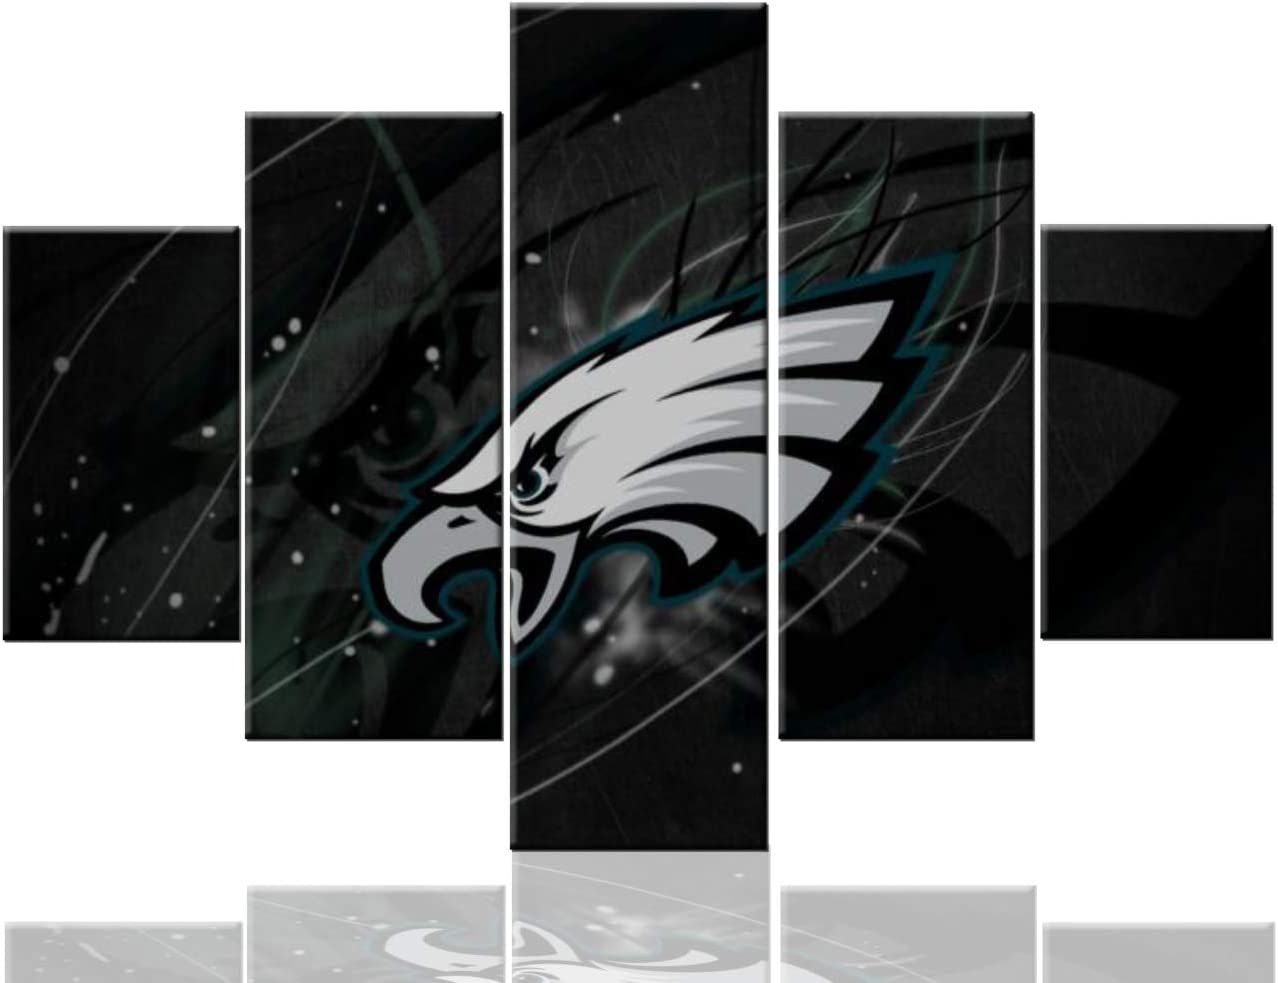 Sports Wall Decor Philadelphia Eagles Paintings Football Super Bowl Pictures NFL Artwork 5 Pcs/Multi Panel Canvas Home Decor for Living Room Giclee Framed Ready to Hang Posters and Prints(60''Wx40''H)